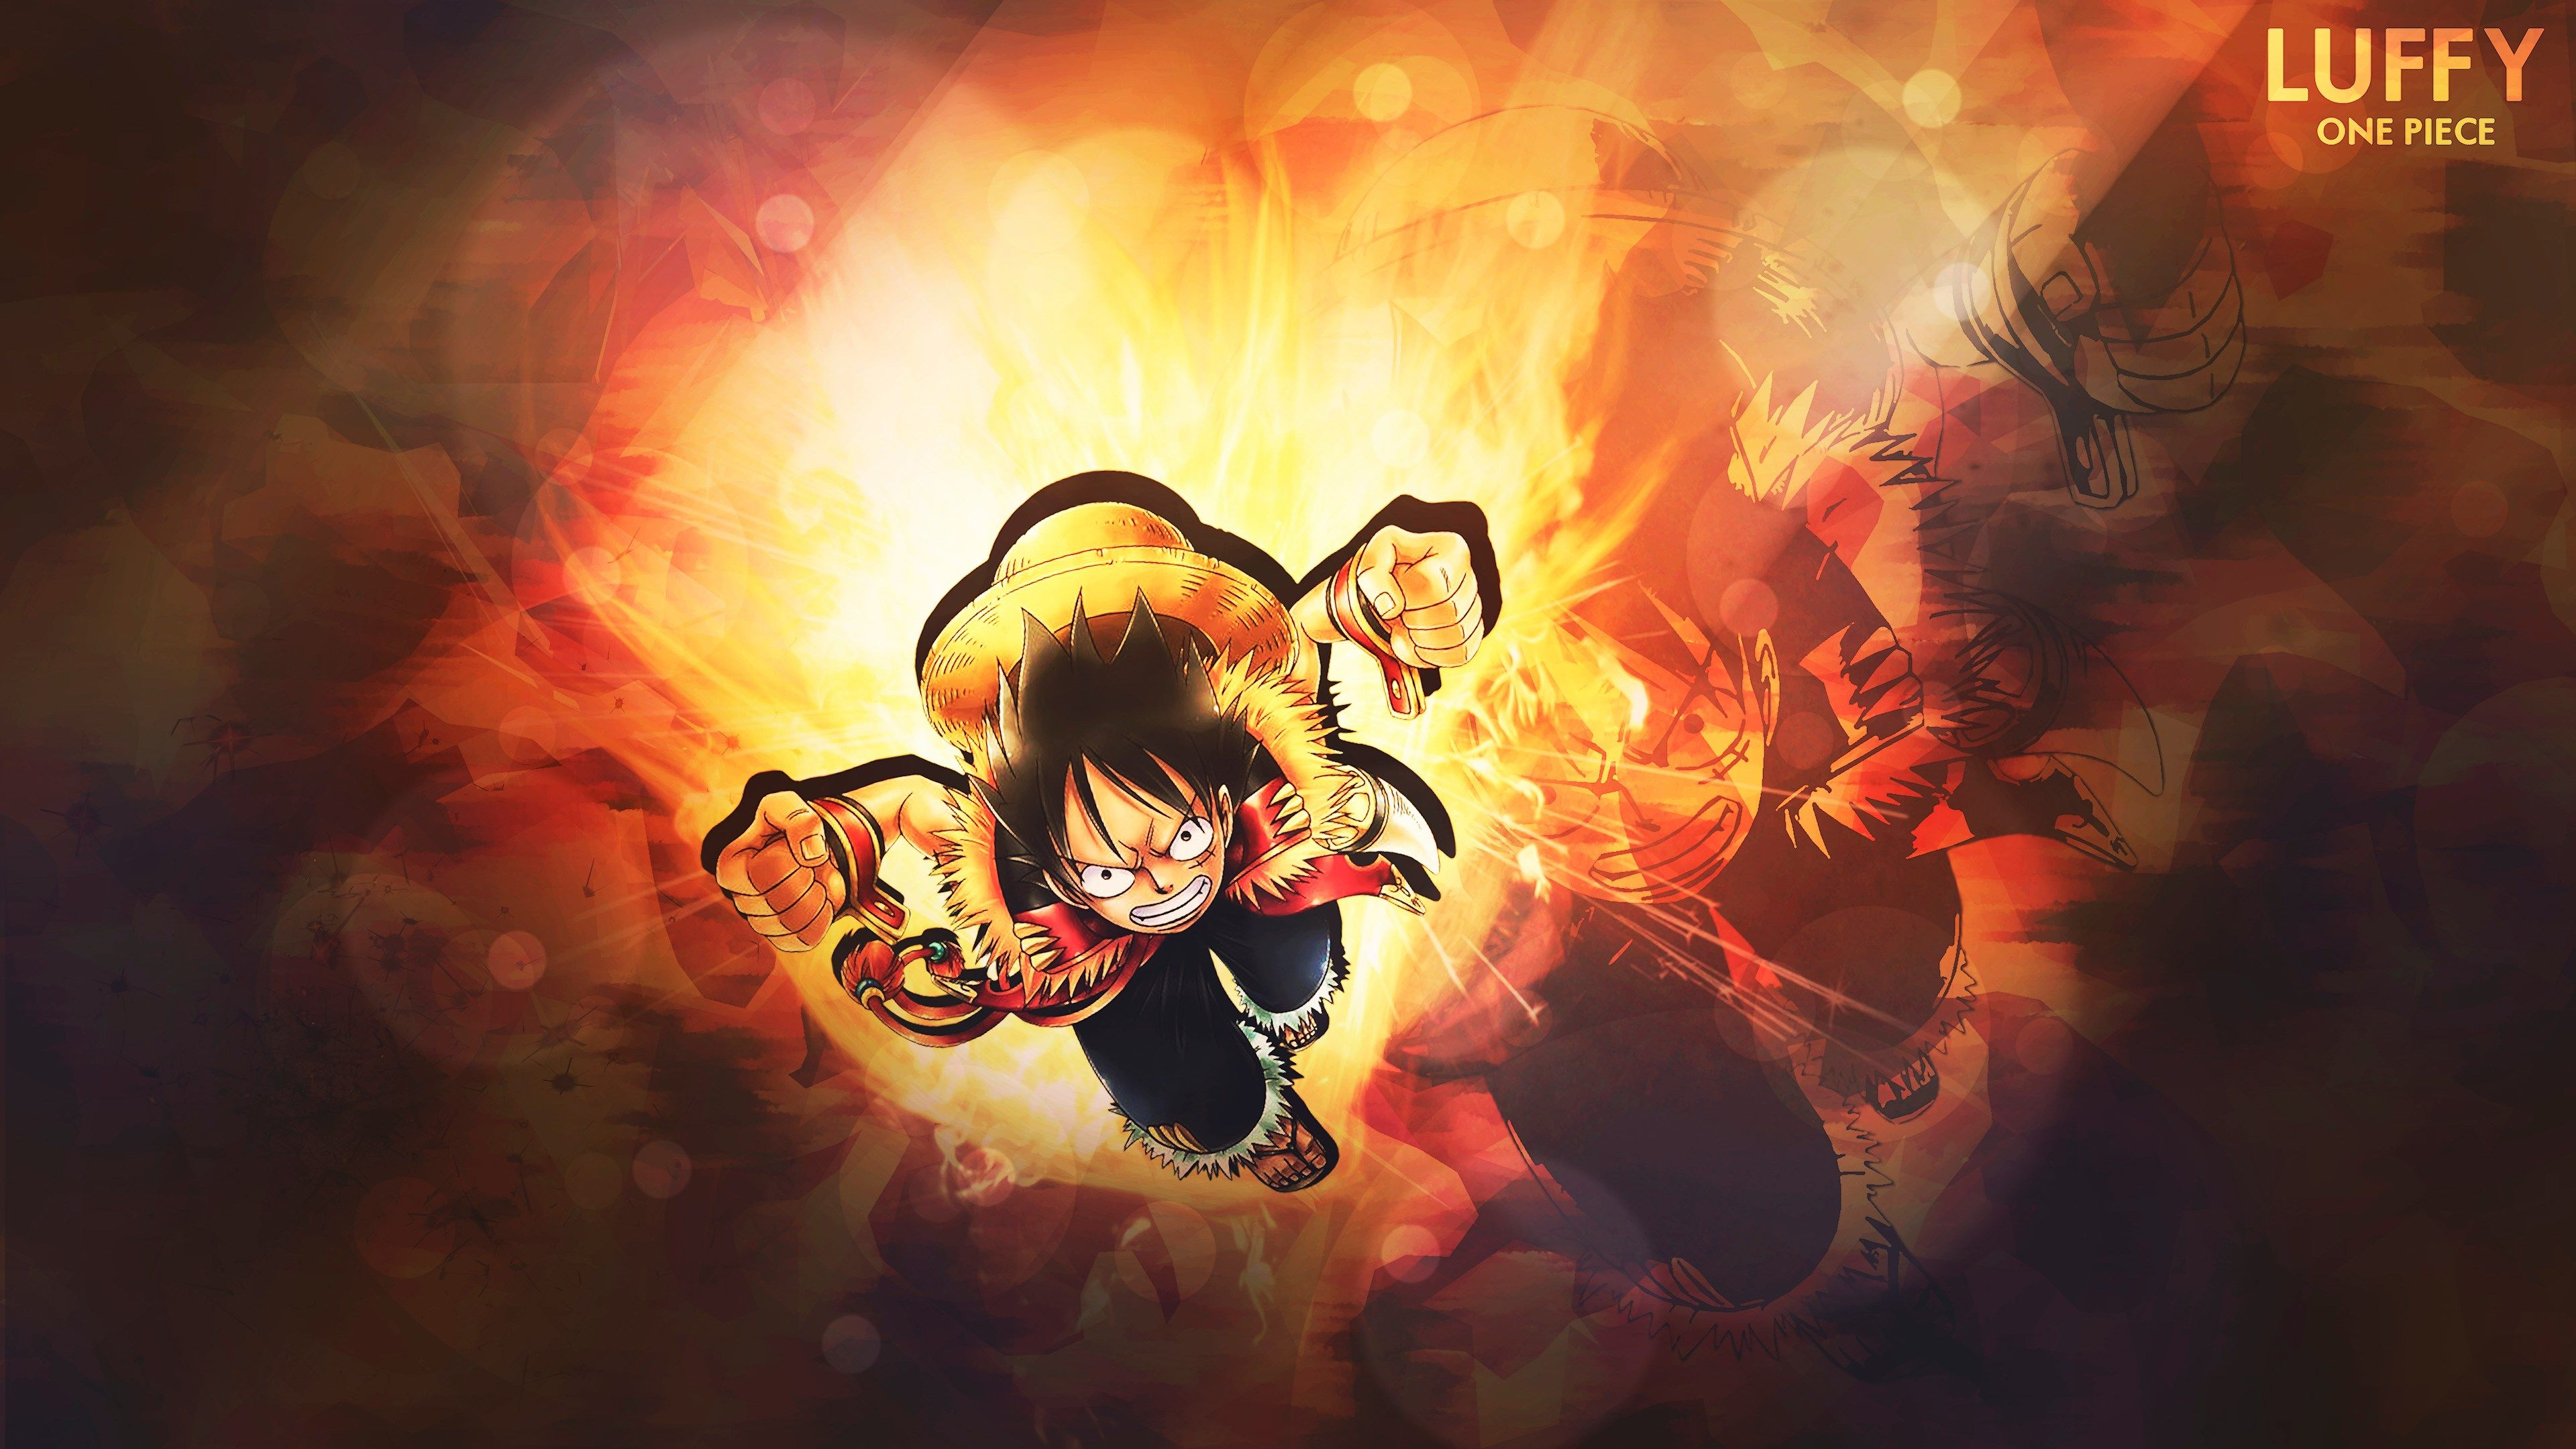 Explore one piece iphone wallpaper on wallpapersafari | find more items about one piece anime wallpaper, one piece phone wallpaper, cool one piece. 3840x2160 widescreen wallpaper one piece | Anime wallpaper ...